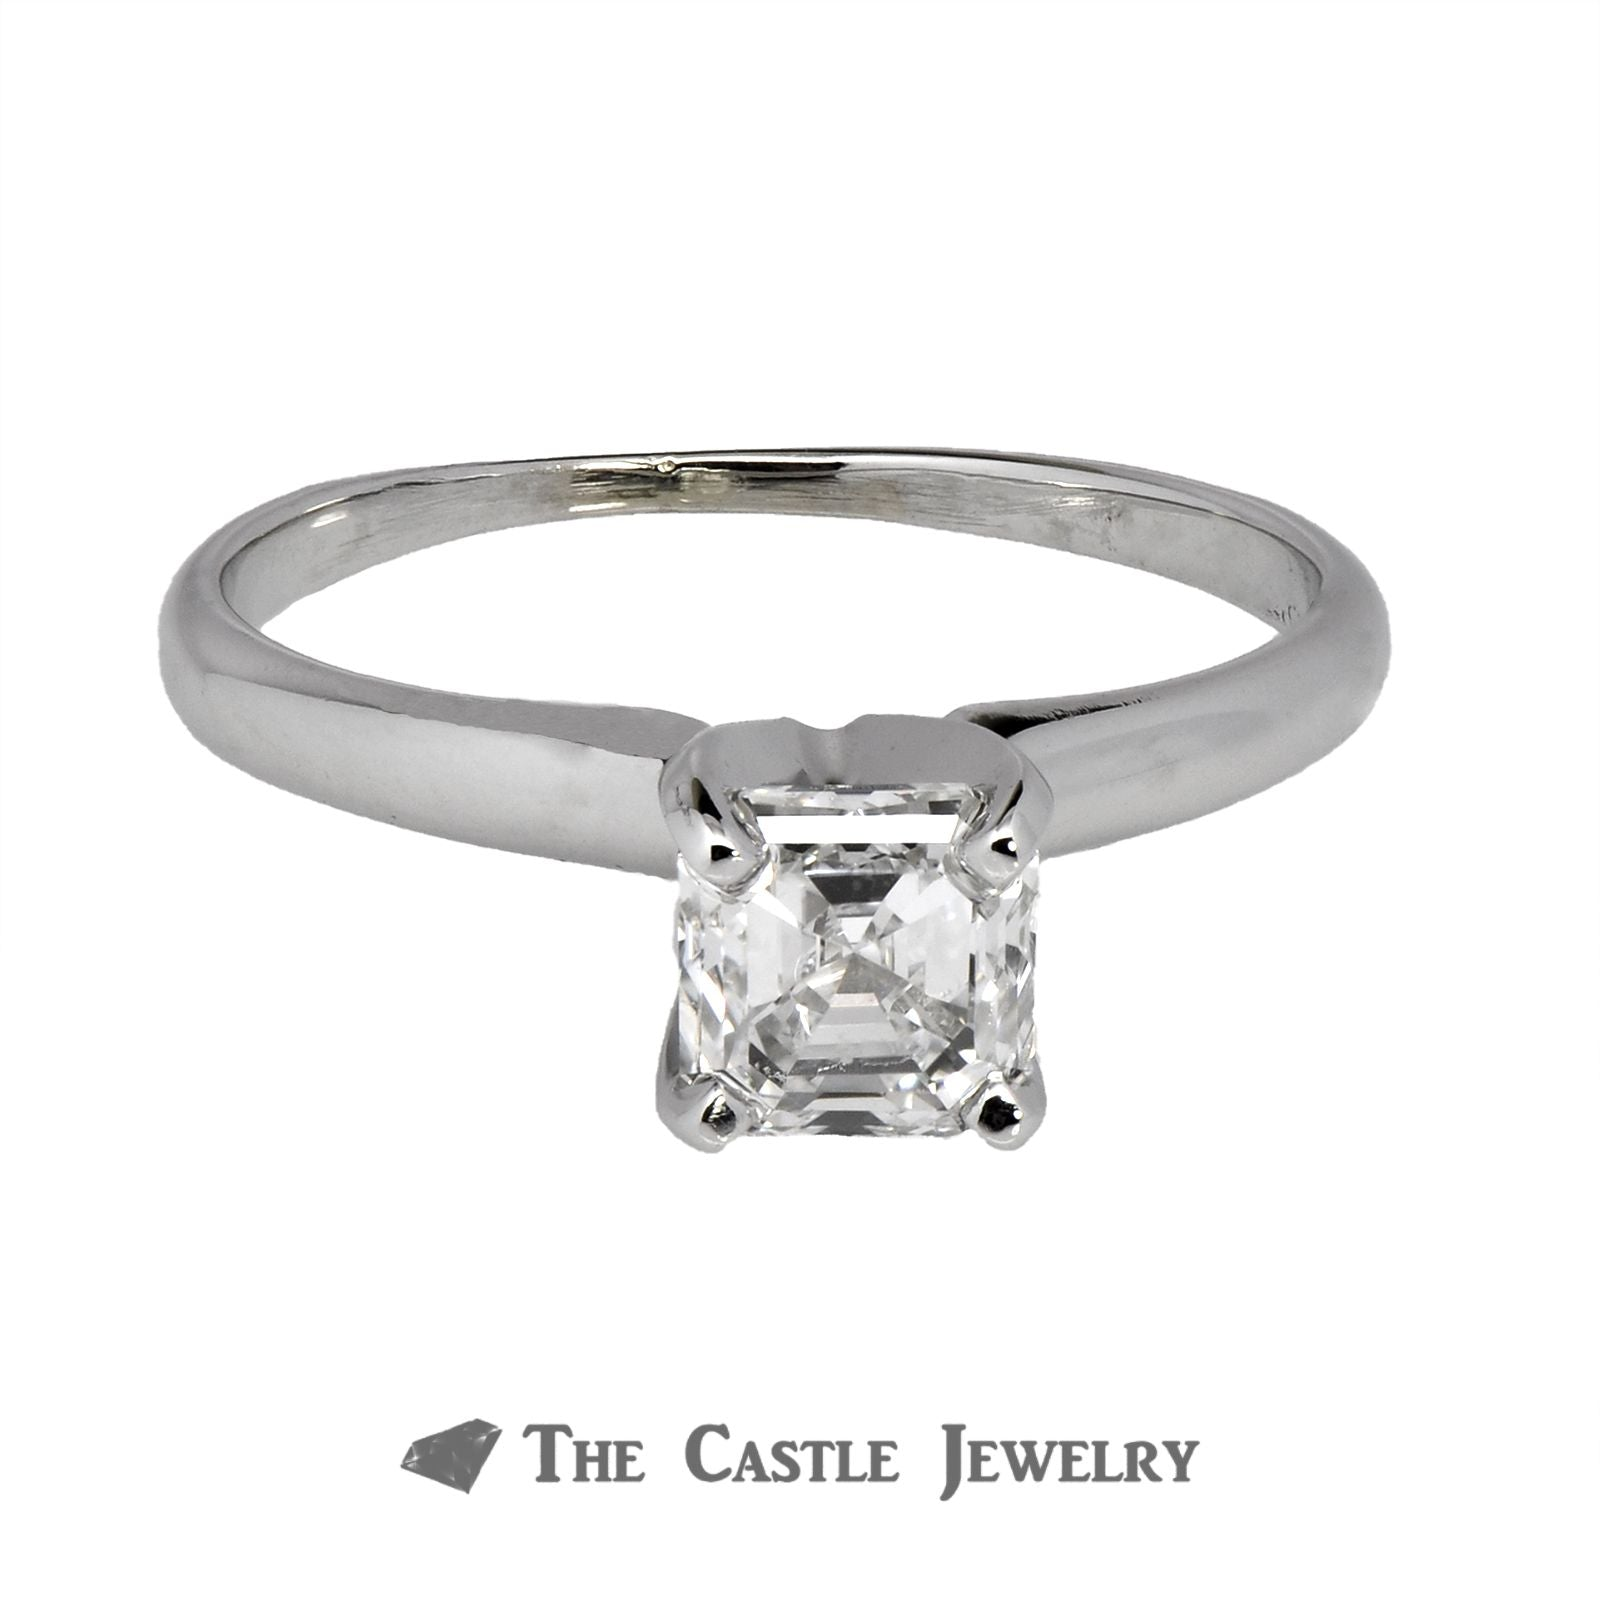 Square Emerald Cut 1.01carat VS2/D Diamond Engagement Ring in 14K White Gold